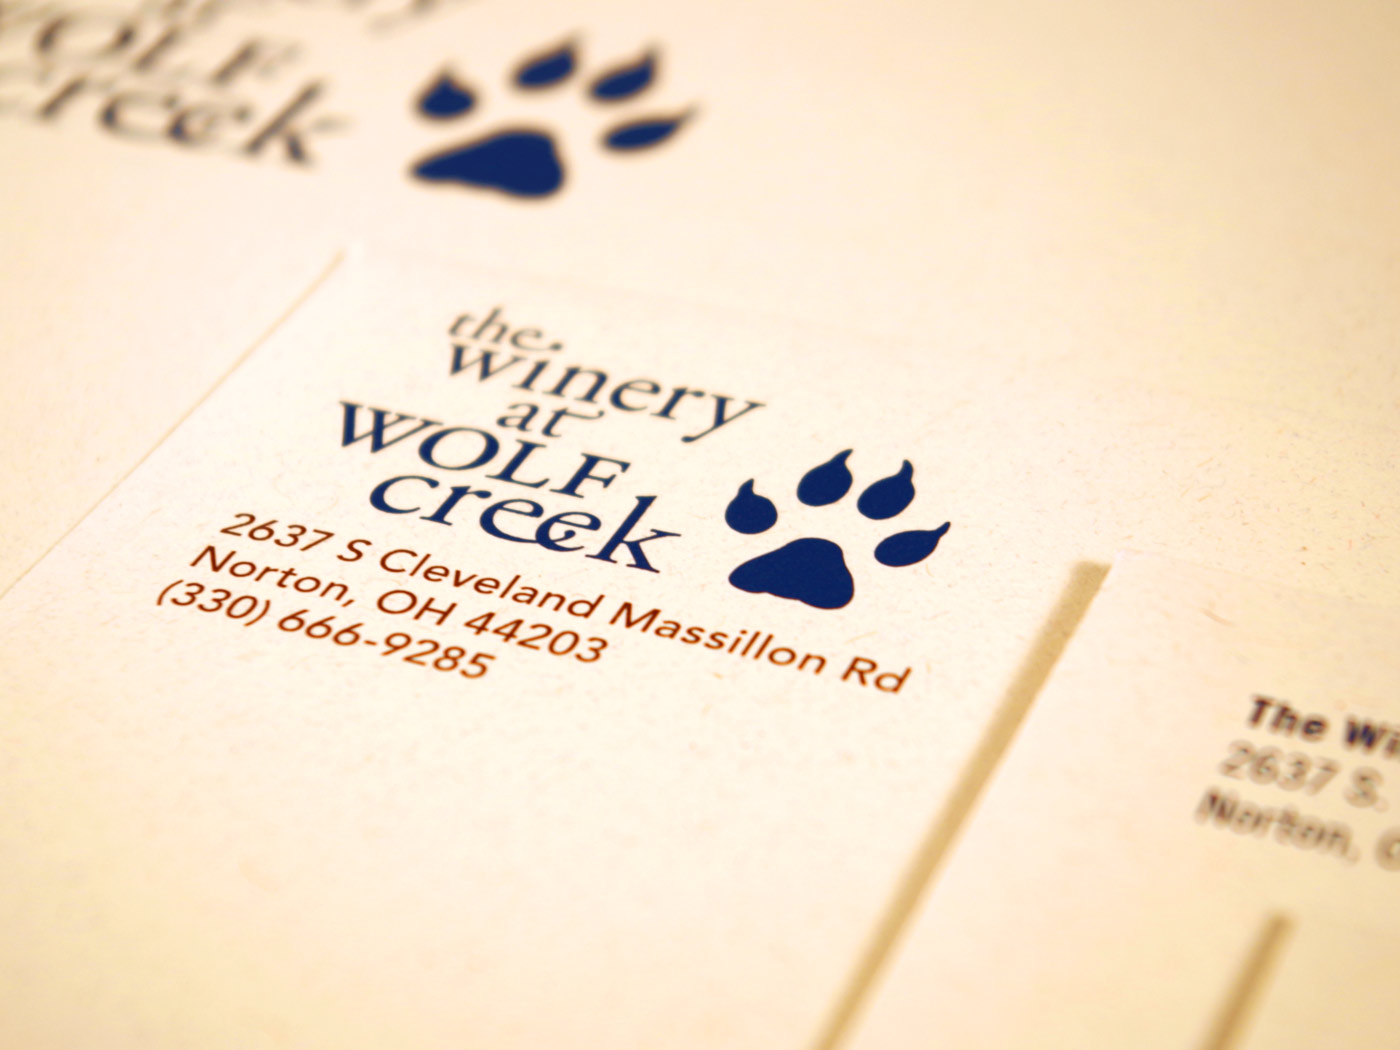 The Winery at Wolf Creek stationery